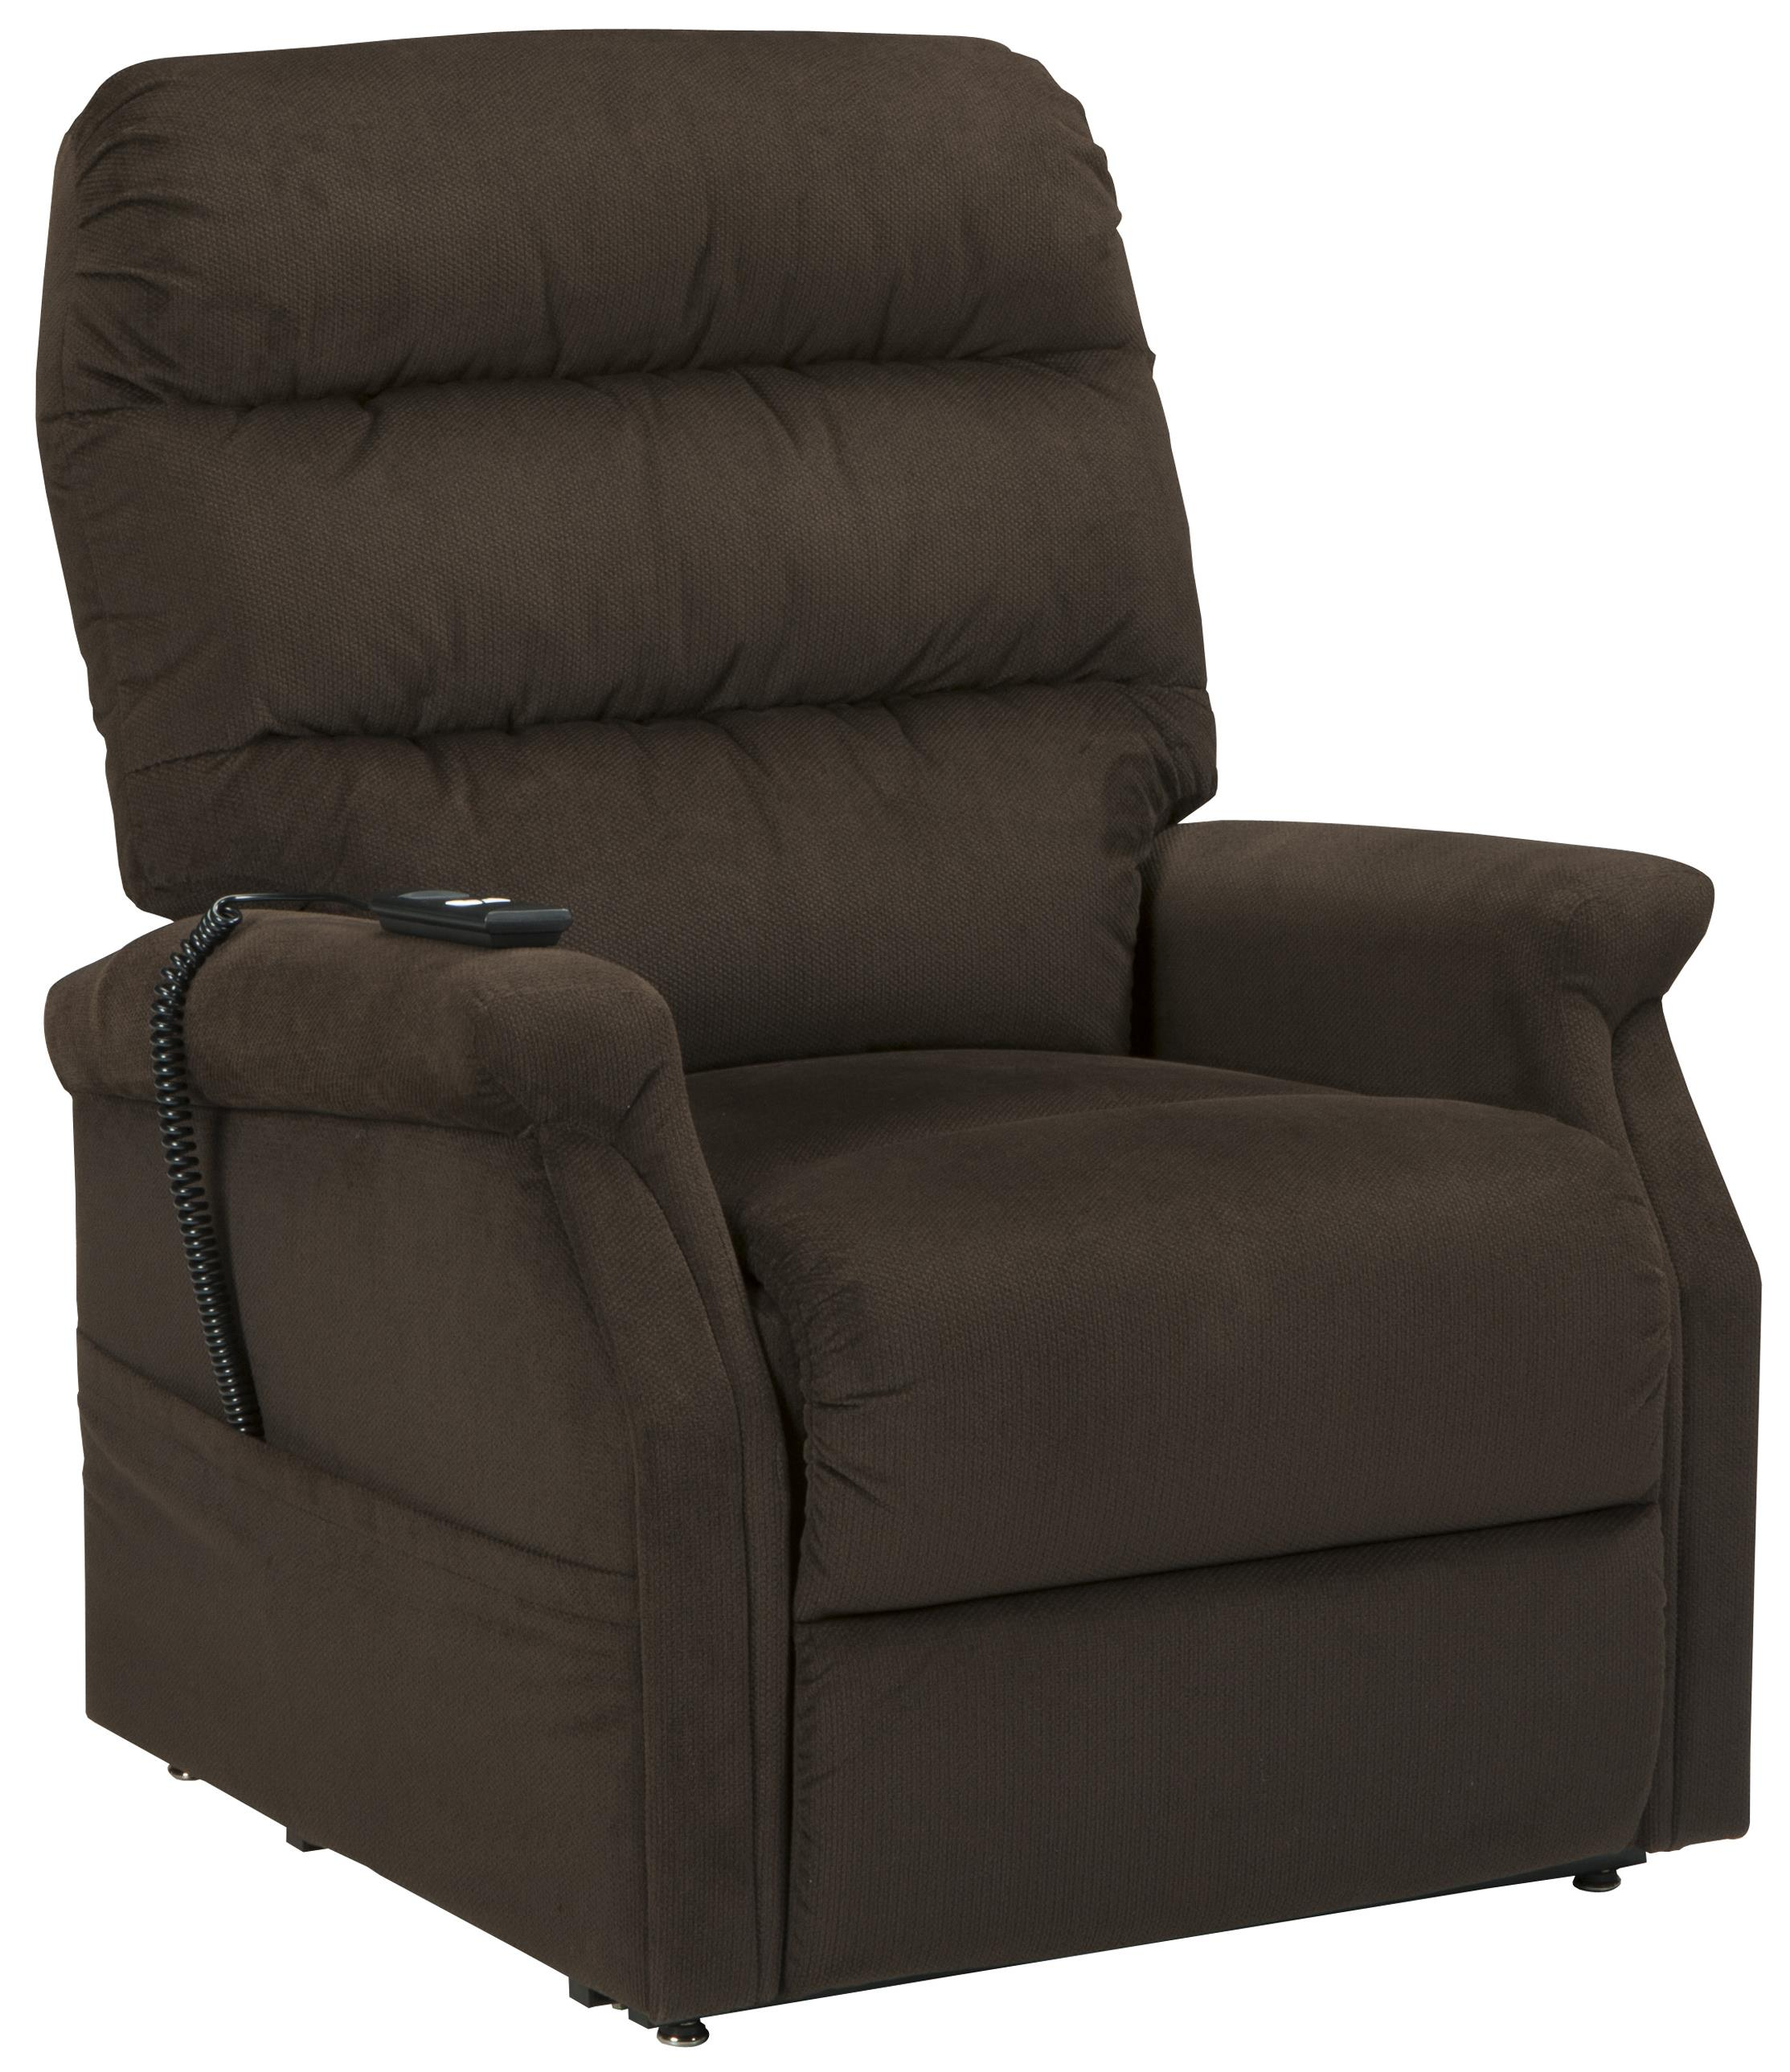 Signature Design by Ashley Brenyth Power Lift Recliner - Item Number: 7460212